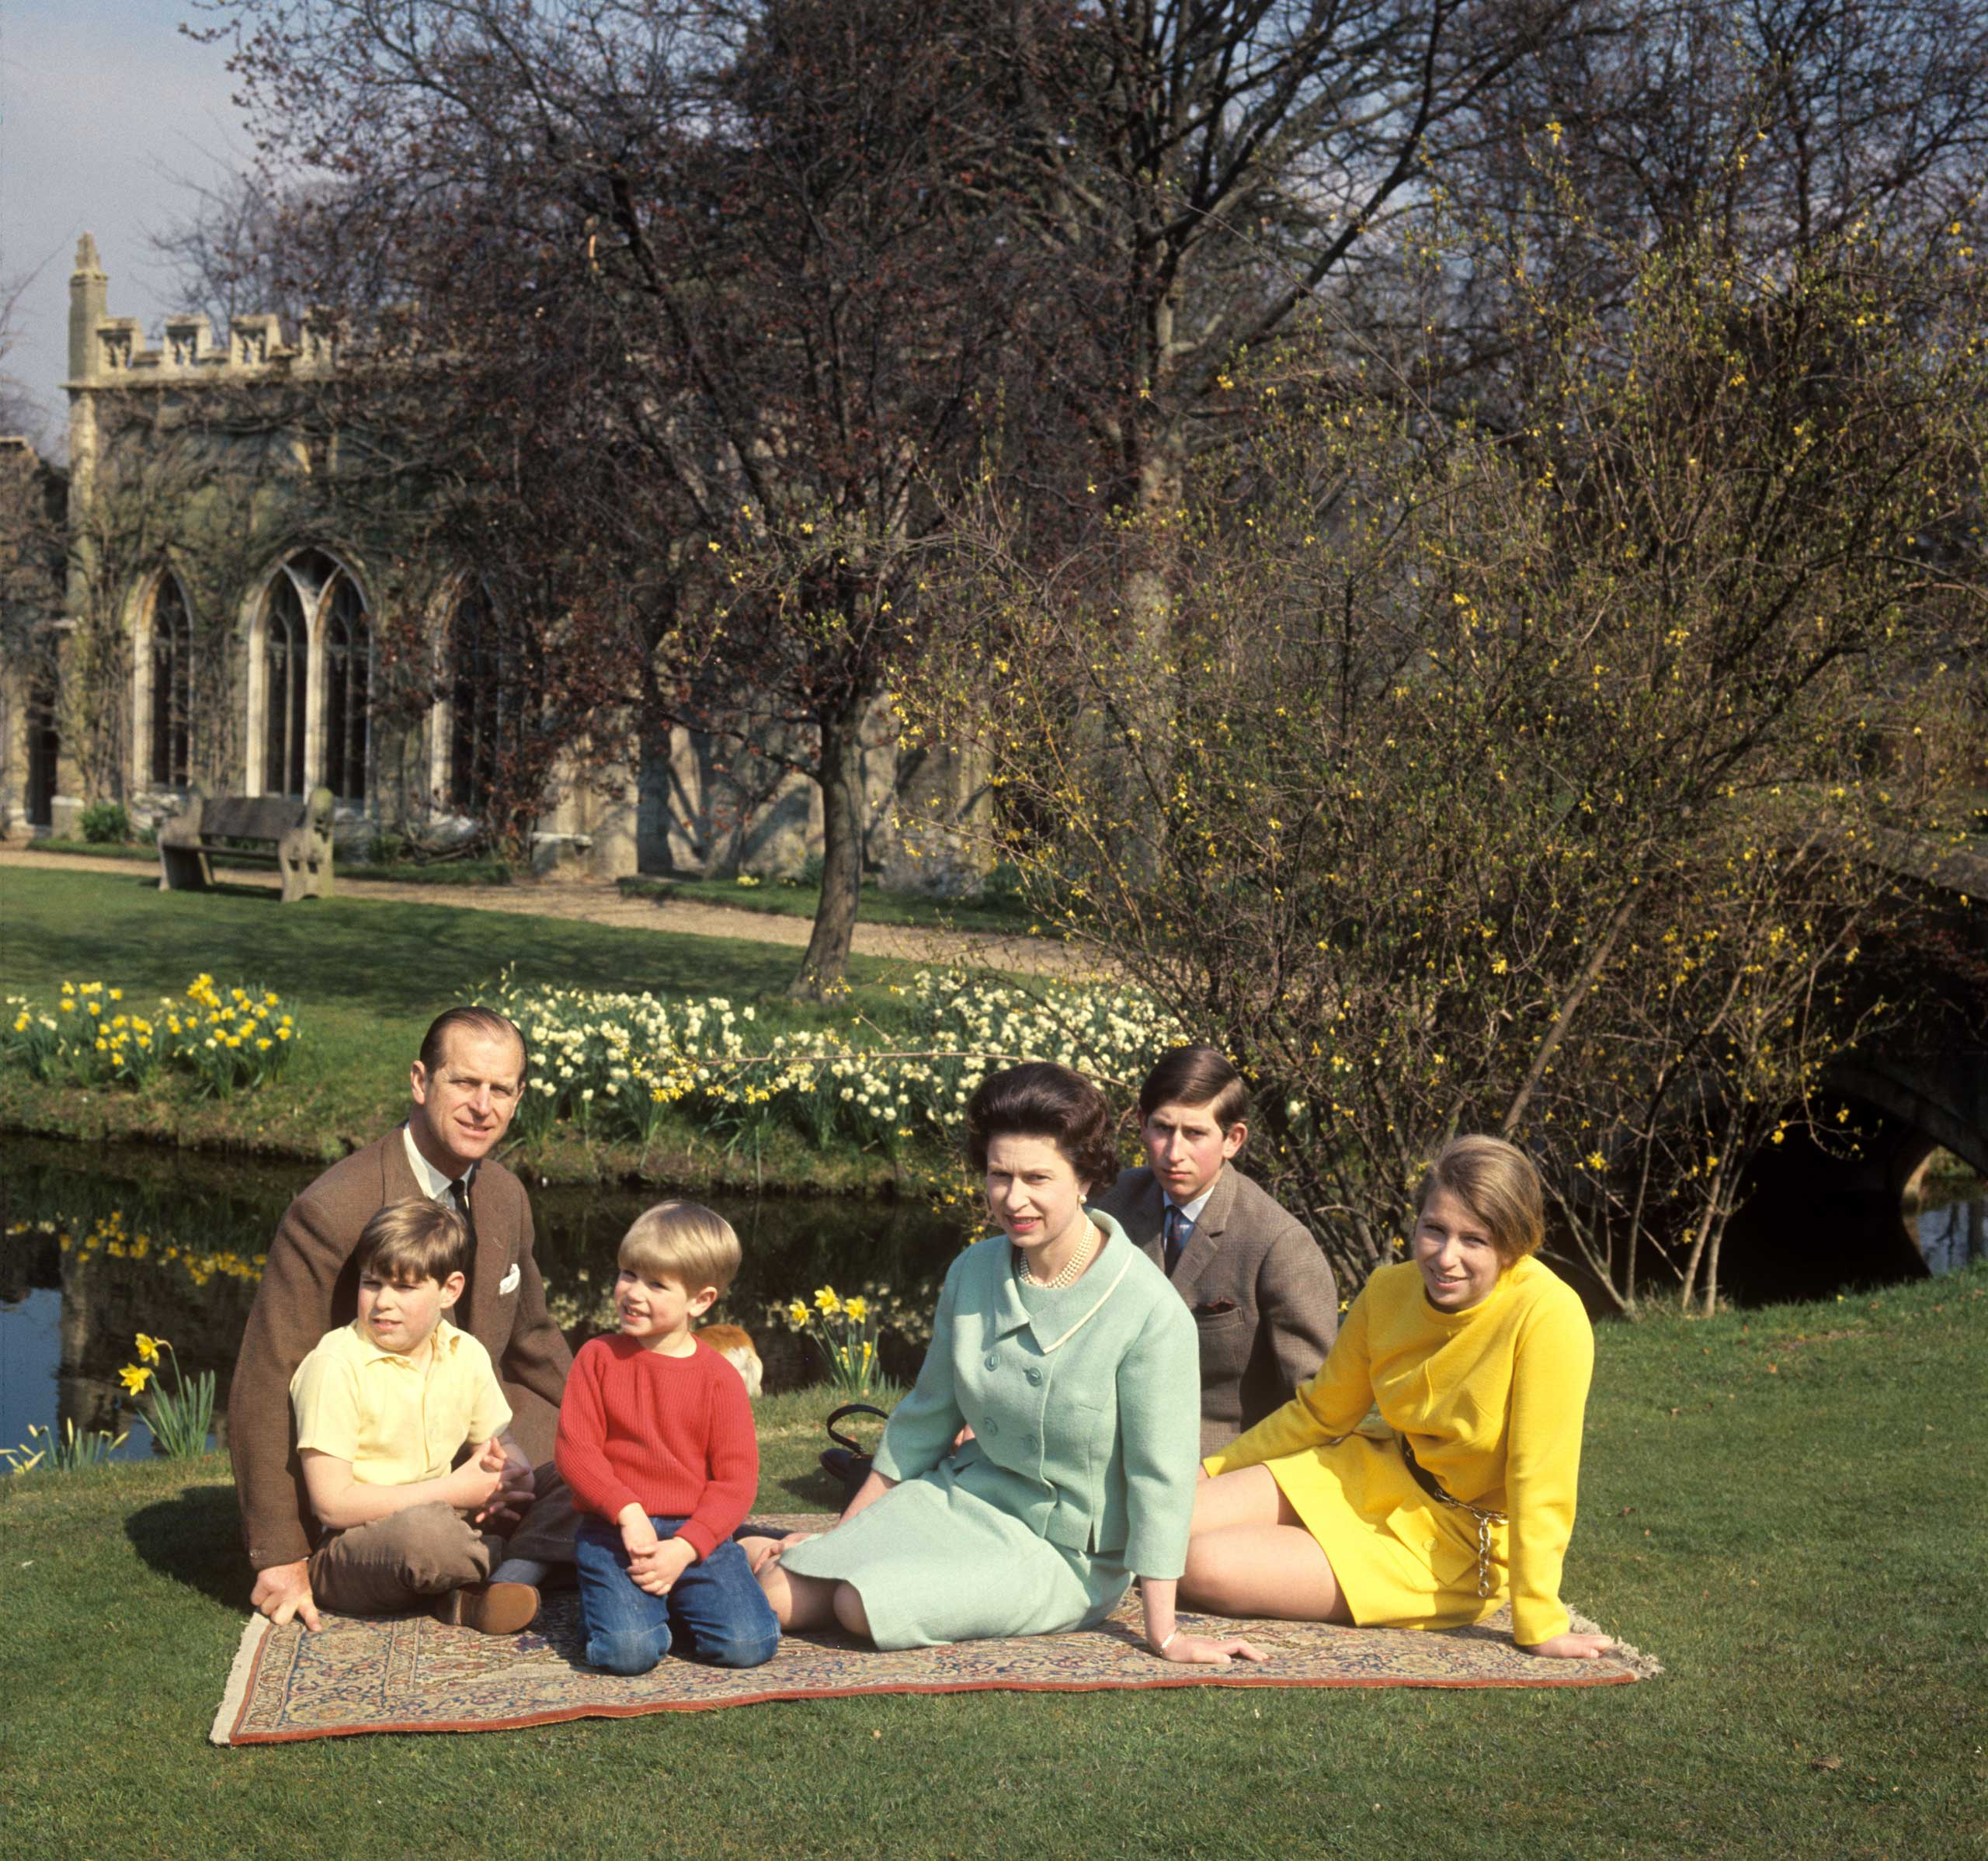 THE WINDSORS: Prince Philip, Prince Andrew, Prince Edward, Queen Elizabeth II, Prince Charles and Princess Anne at Frogmore, Windsor.